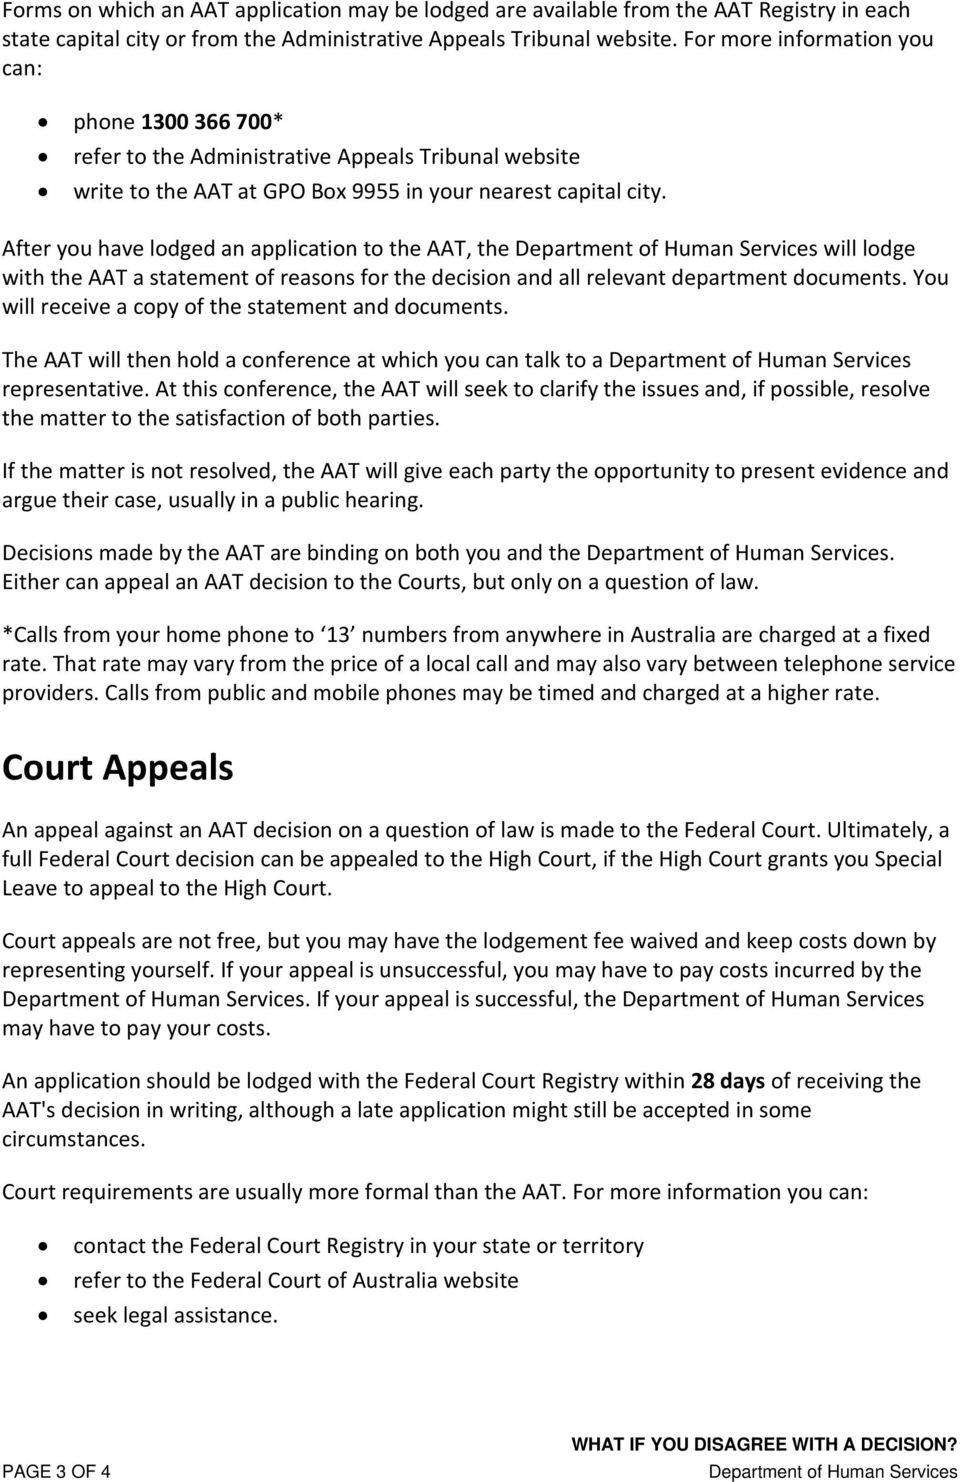 After you have lodged an application to the AAT, the will lodge with the AAT a statement of reasons for the decision and all relevant department documents.